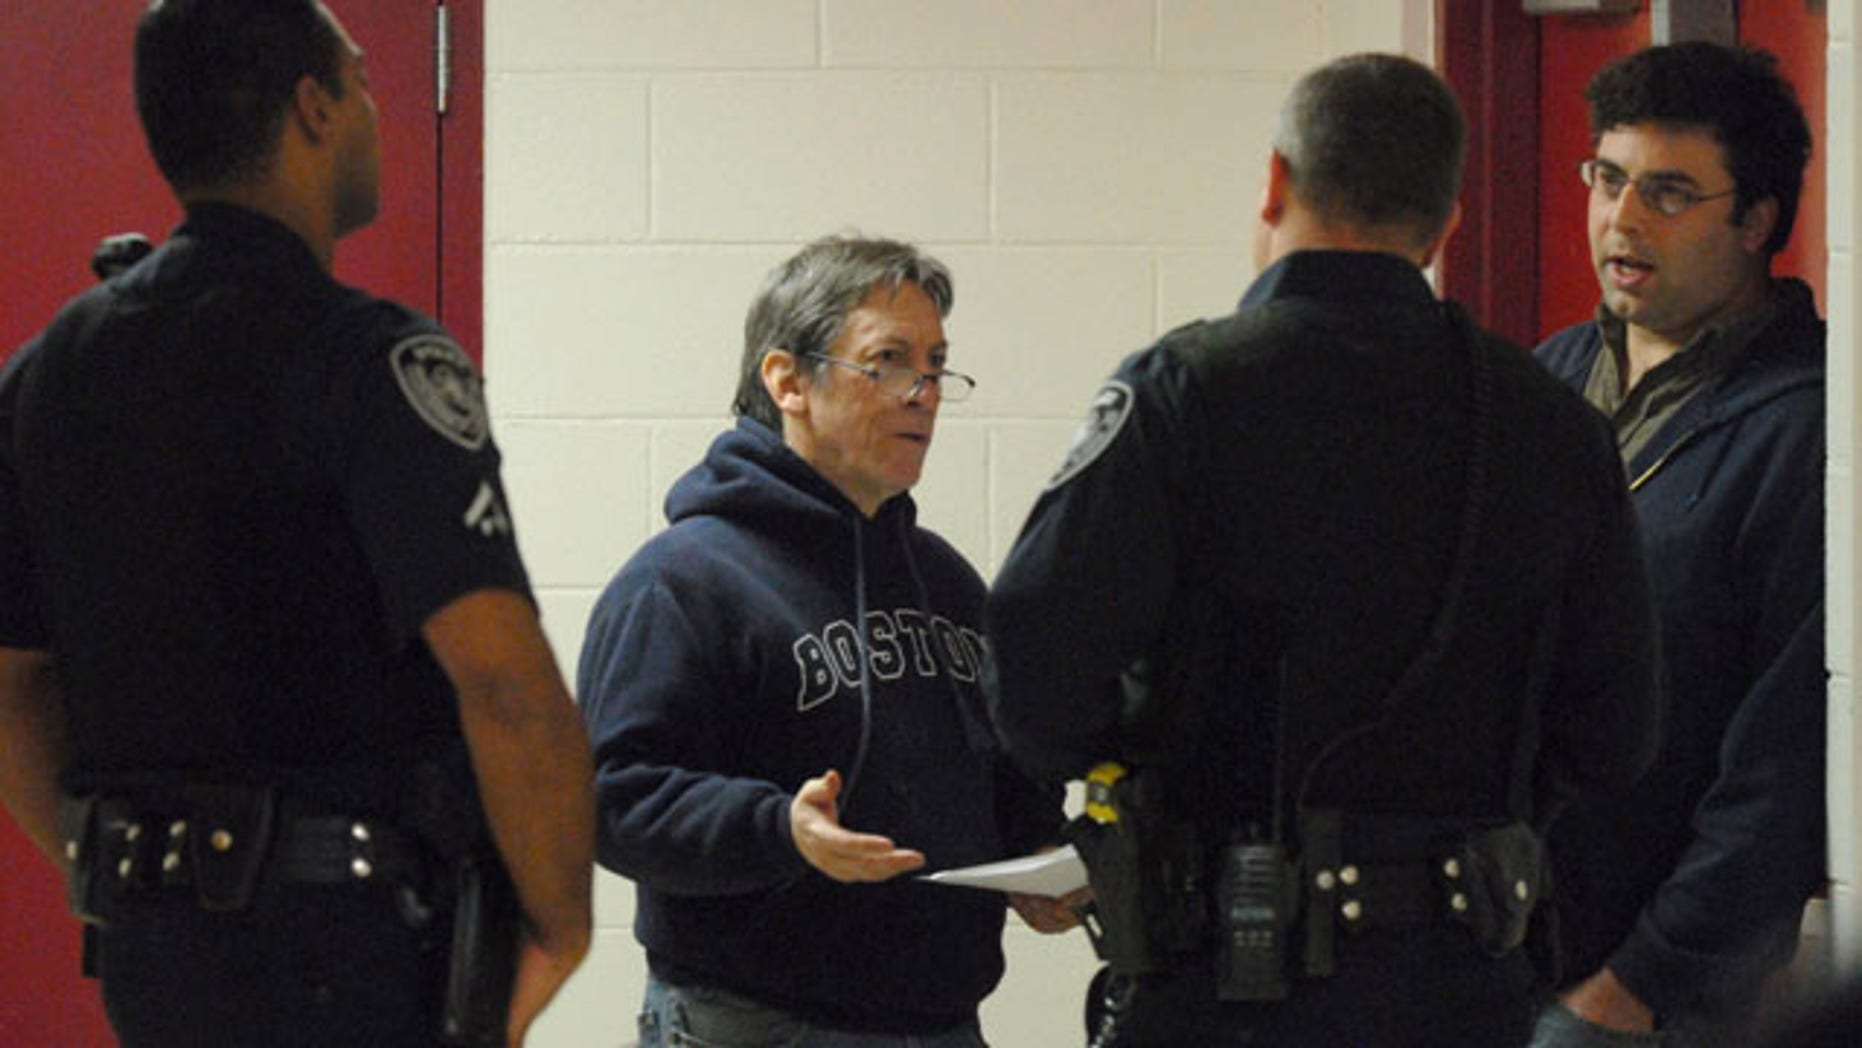 Oct. 17: Attorney John McKay, second from left, and Alaska Dispatch founder and editor Tony Hopfinger, right, talk to Anchorage Police after Hopfinger was detained and handcuffed by a security guard at Alaska Senate candidate Joe Miller's campaign event in Anchorage, Alaska.